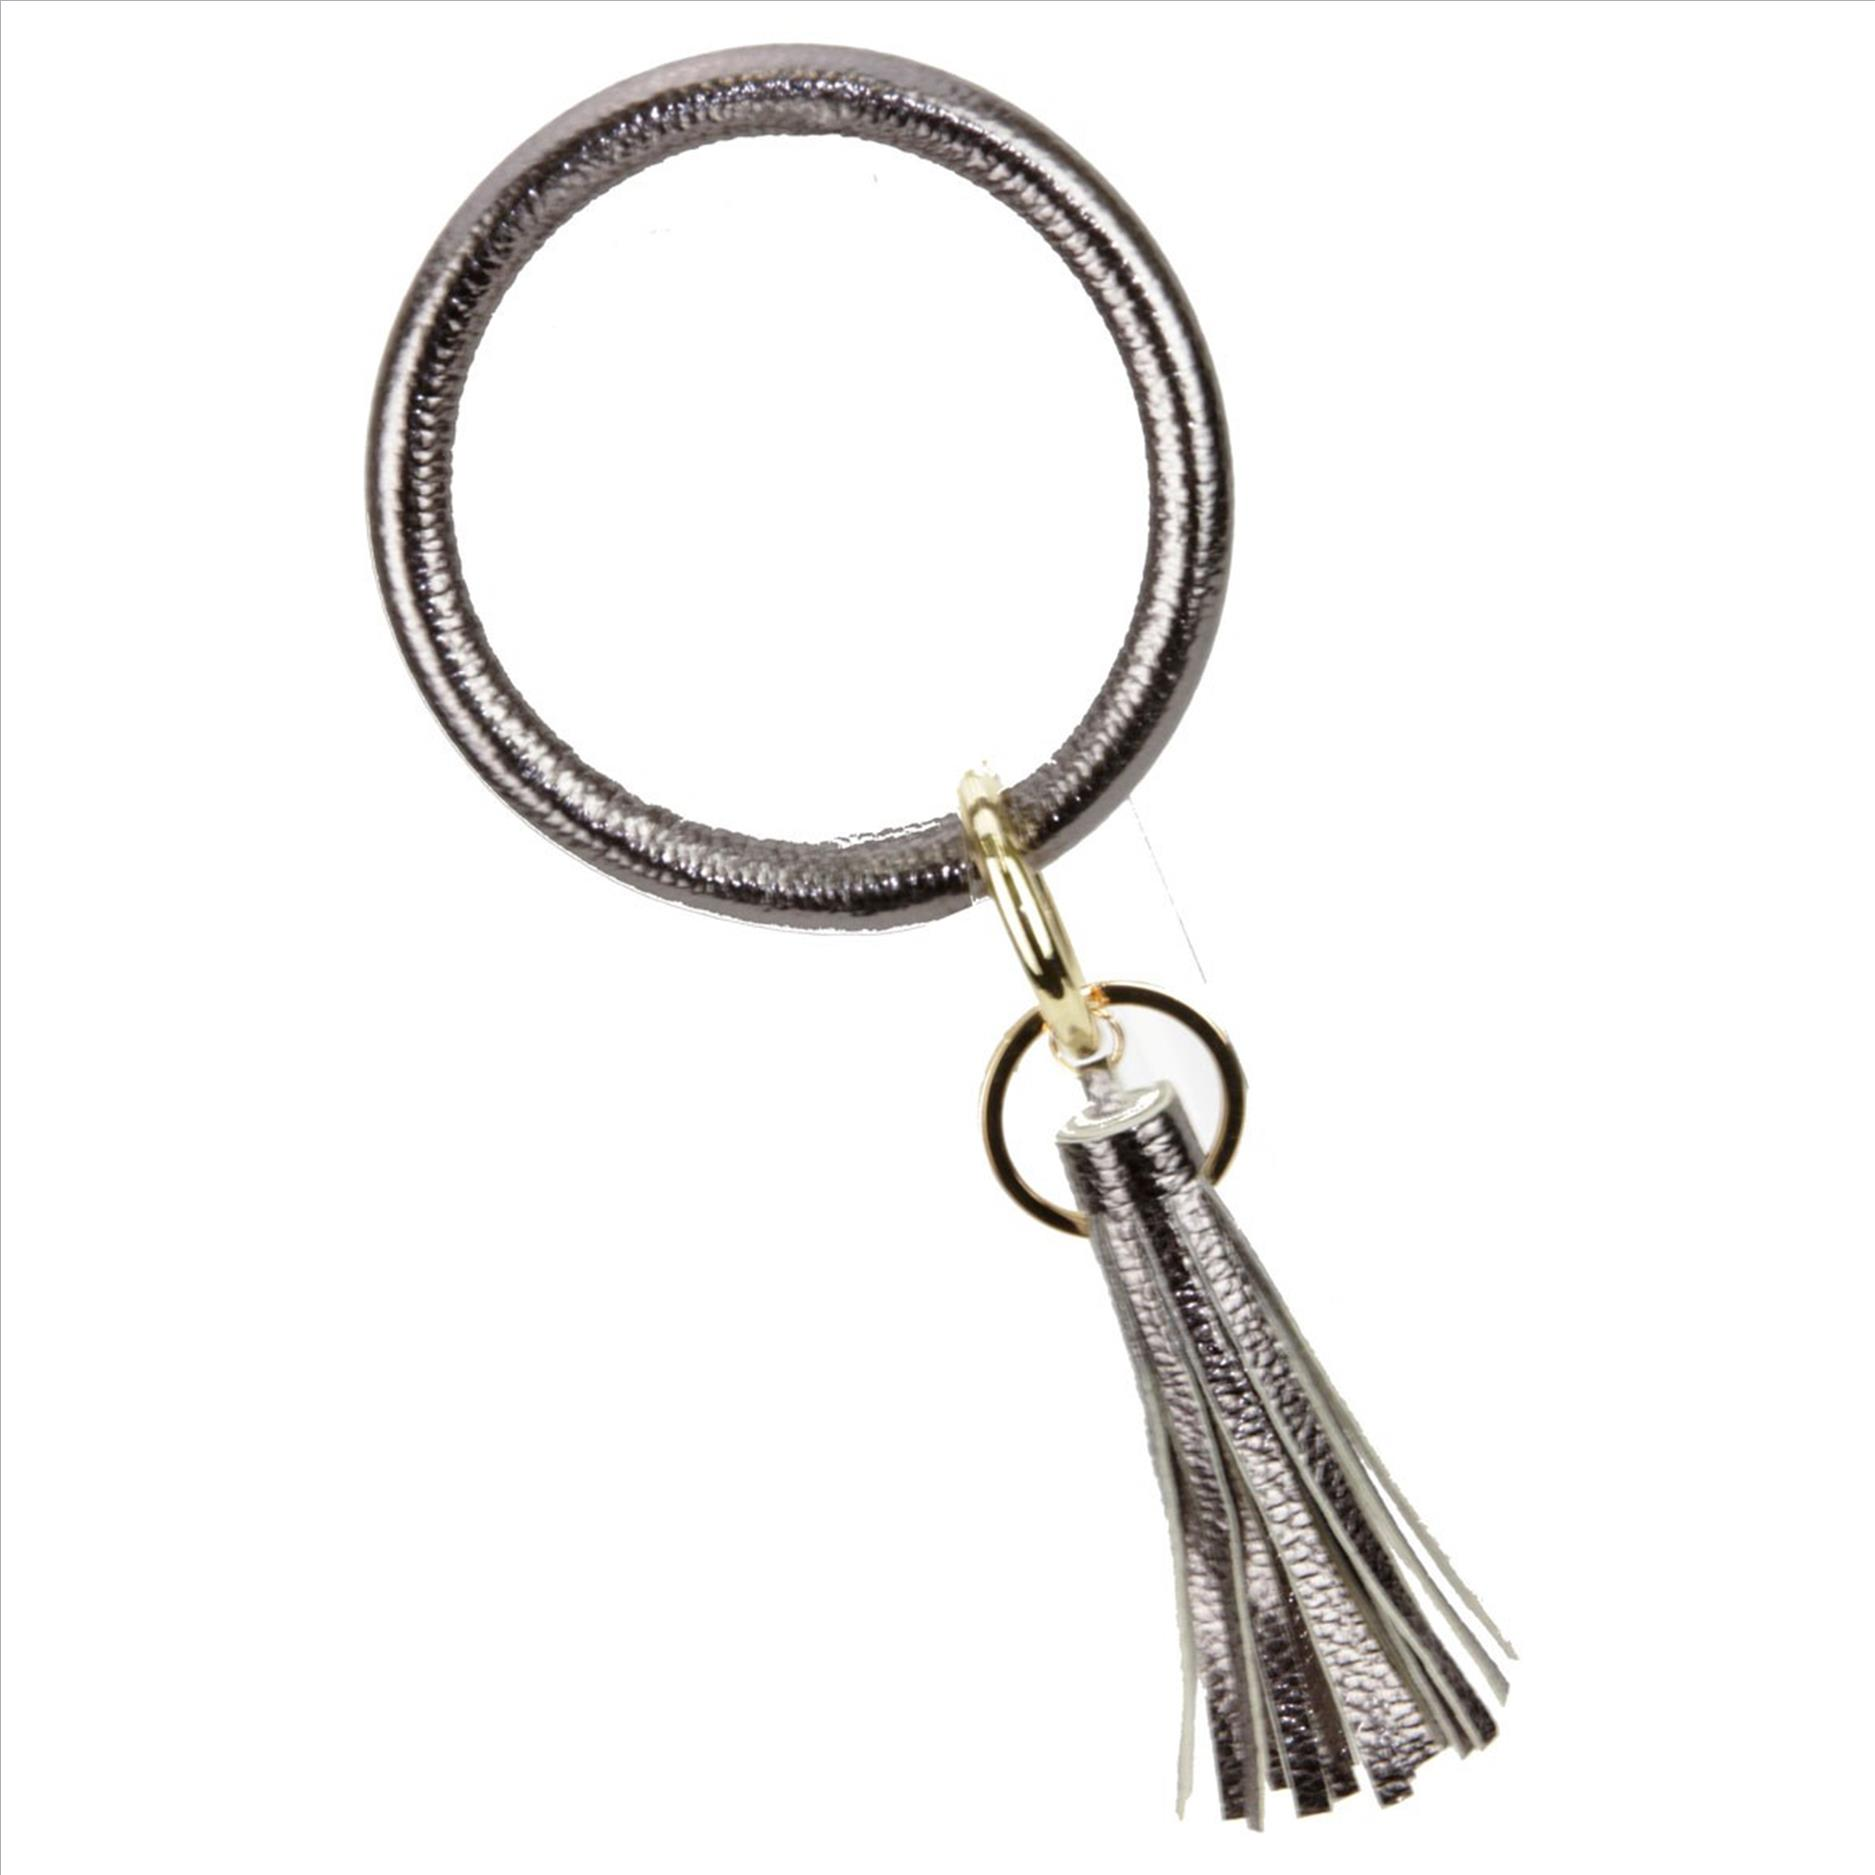 Bangle Tassel Key Chain - Hematite